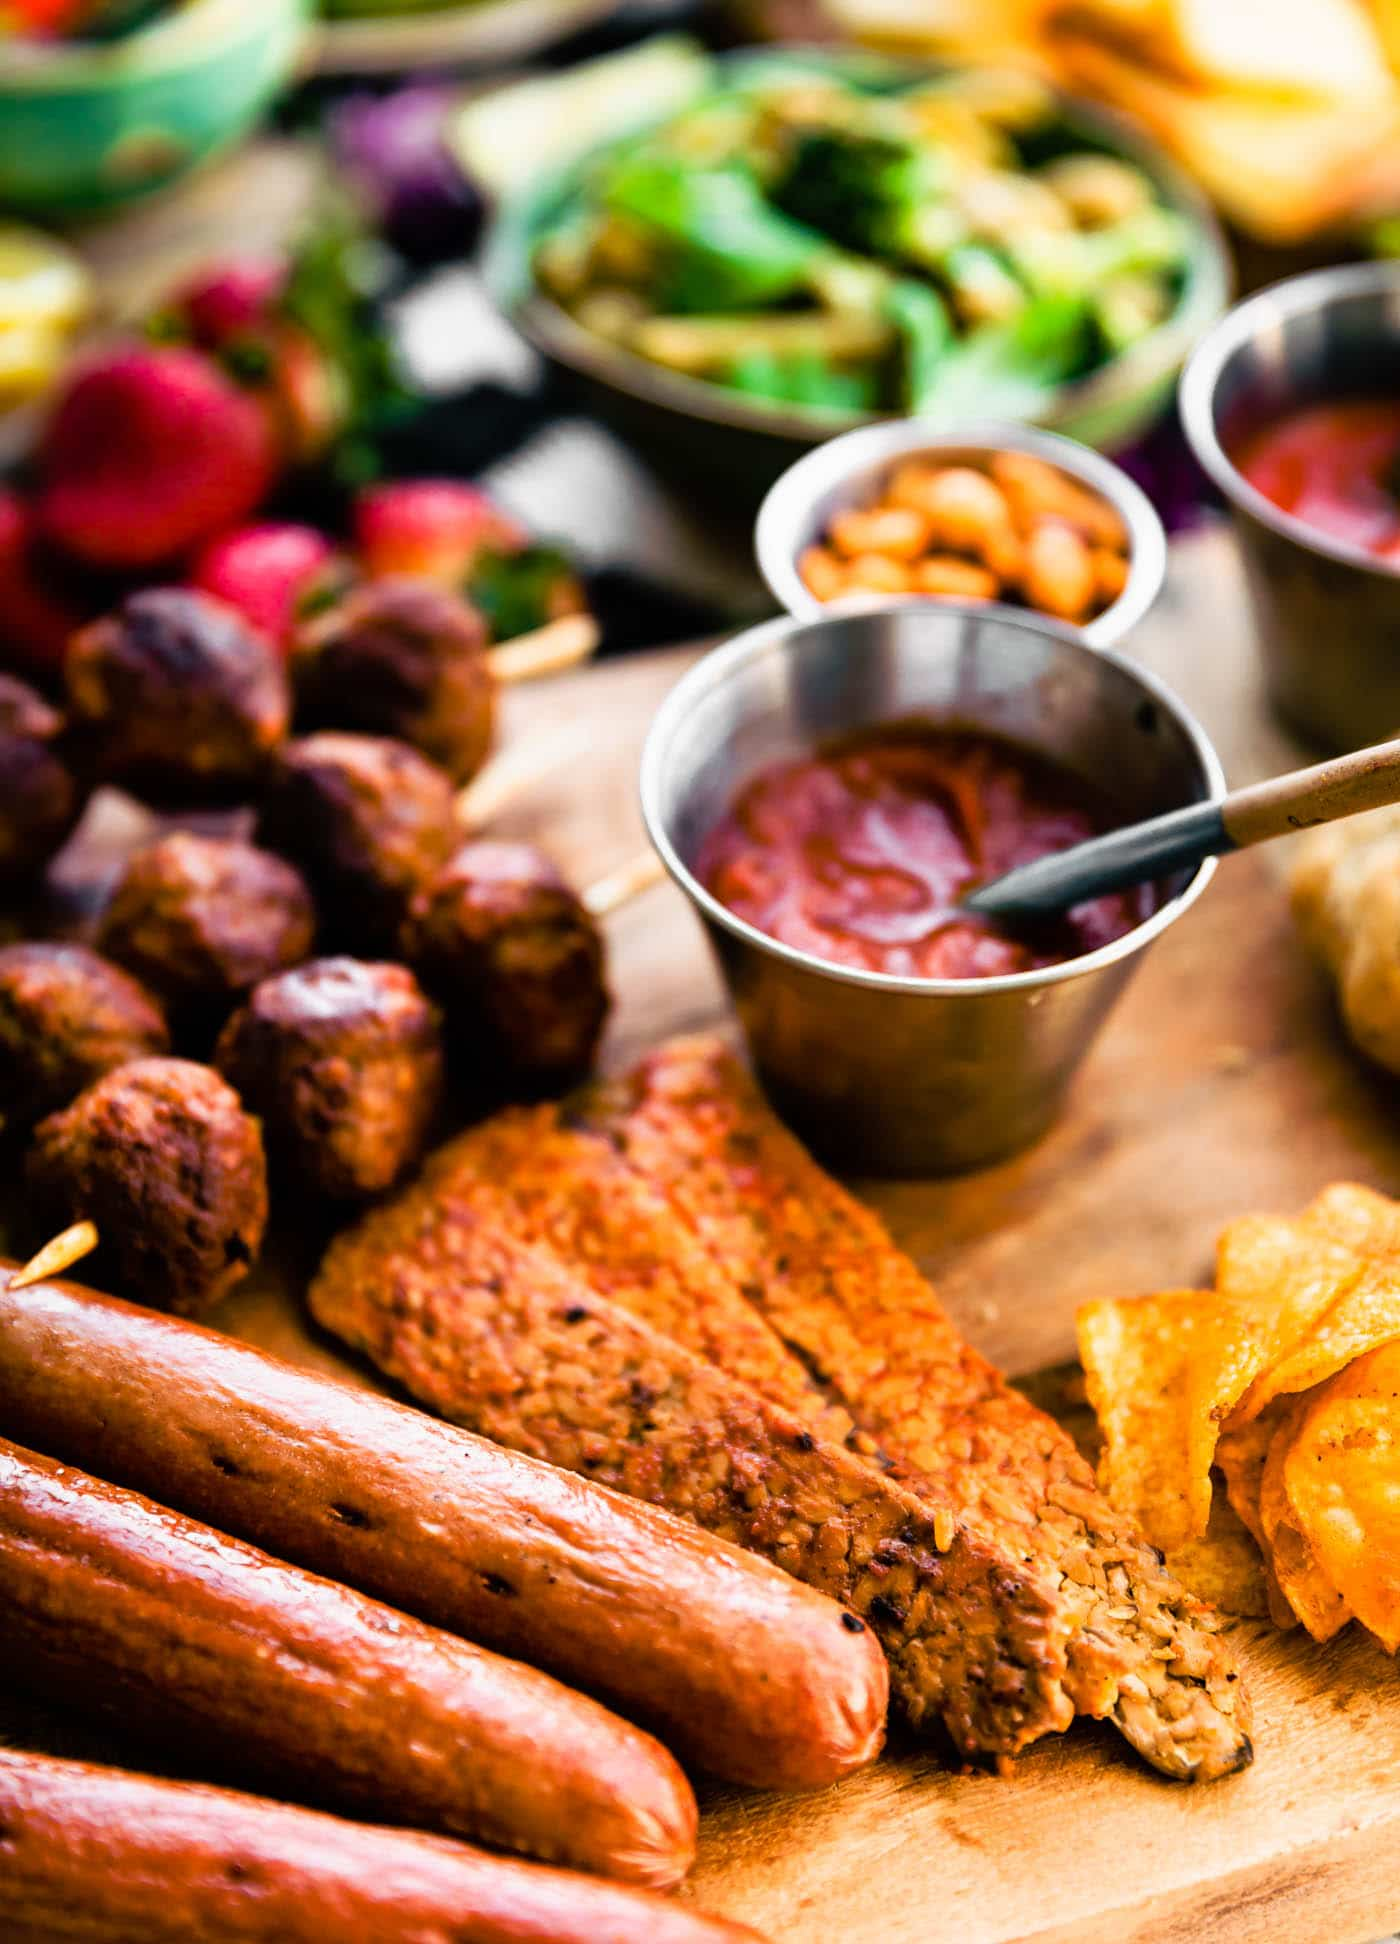 Close up image of recipes included in the summer bbq graze board such as sausage, homemade sriracha, meatballs, and homemade crackers.